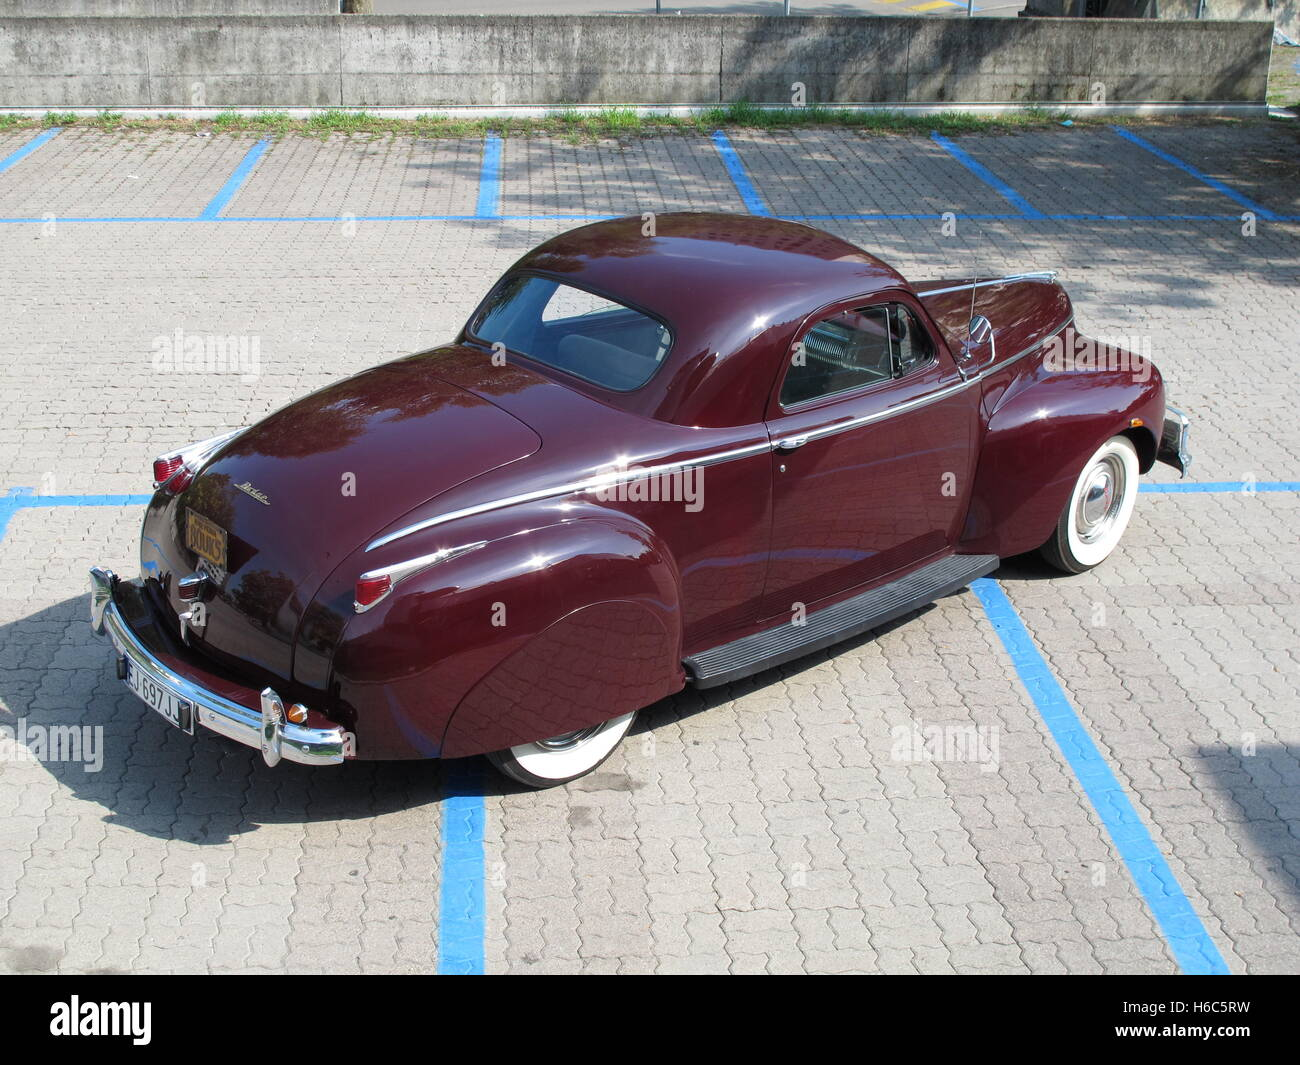 1941 dodge business coupe vintage car stock photo 124428525 alamy1941 dodge business coupe vintage car